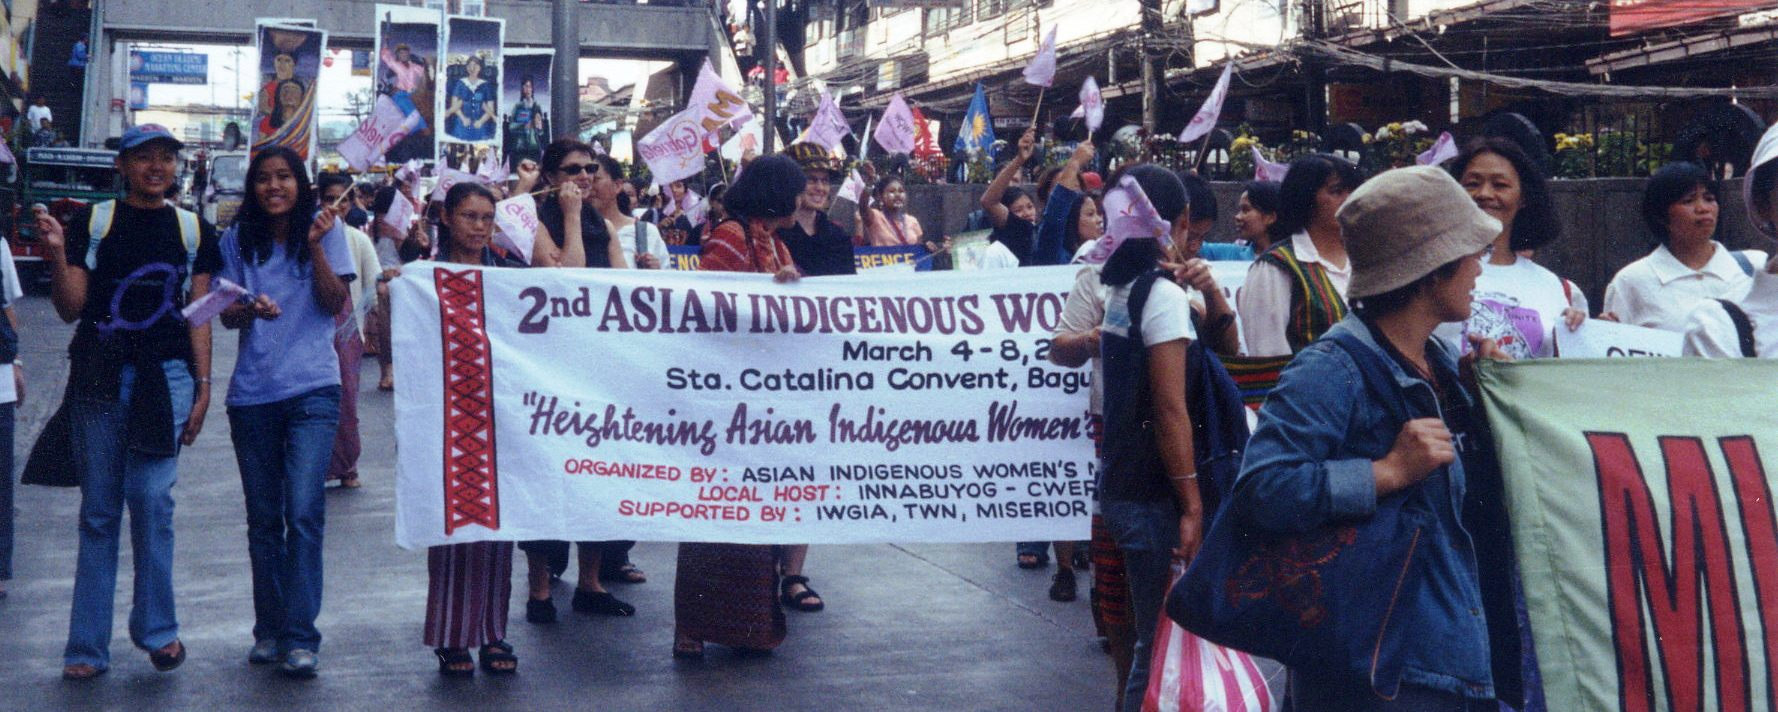 Second Asian Indigenous Women's Conference